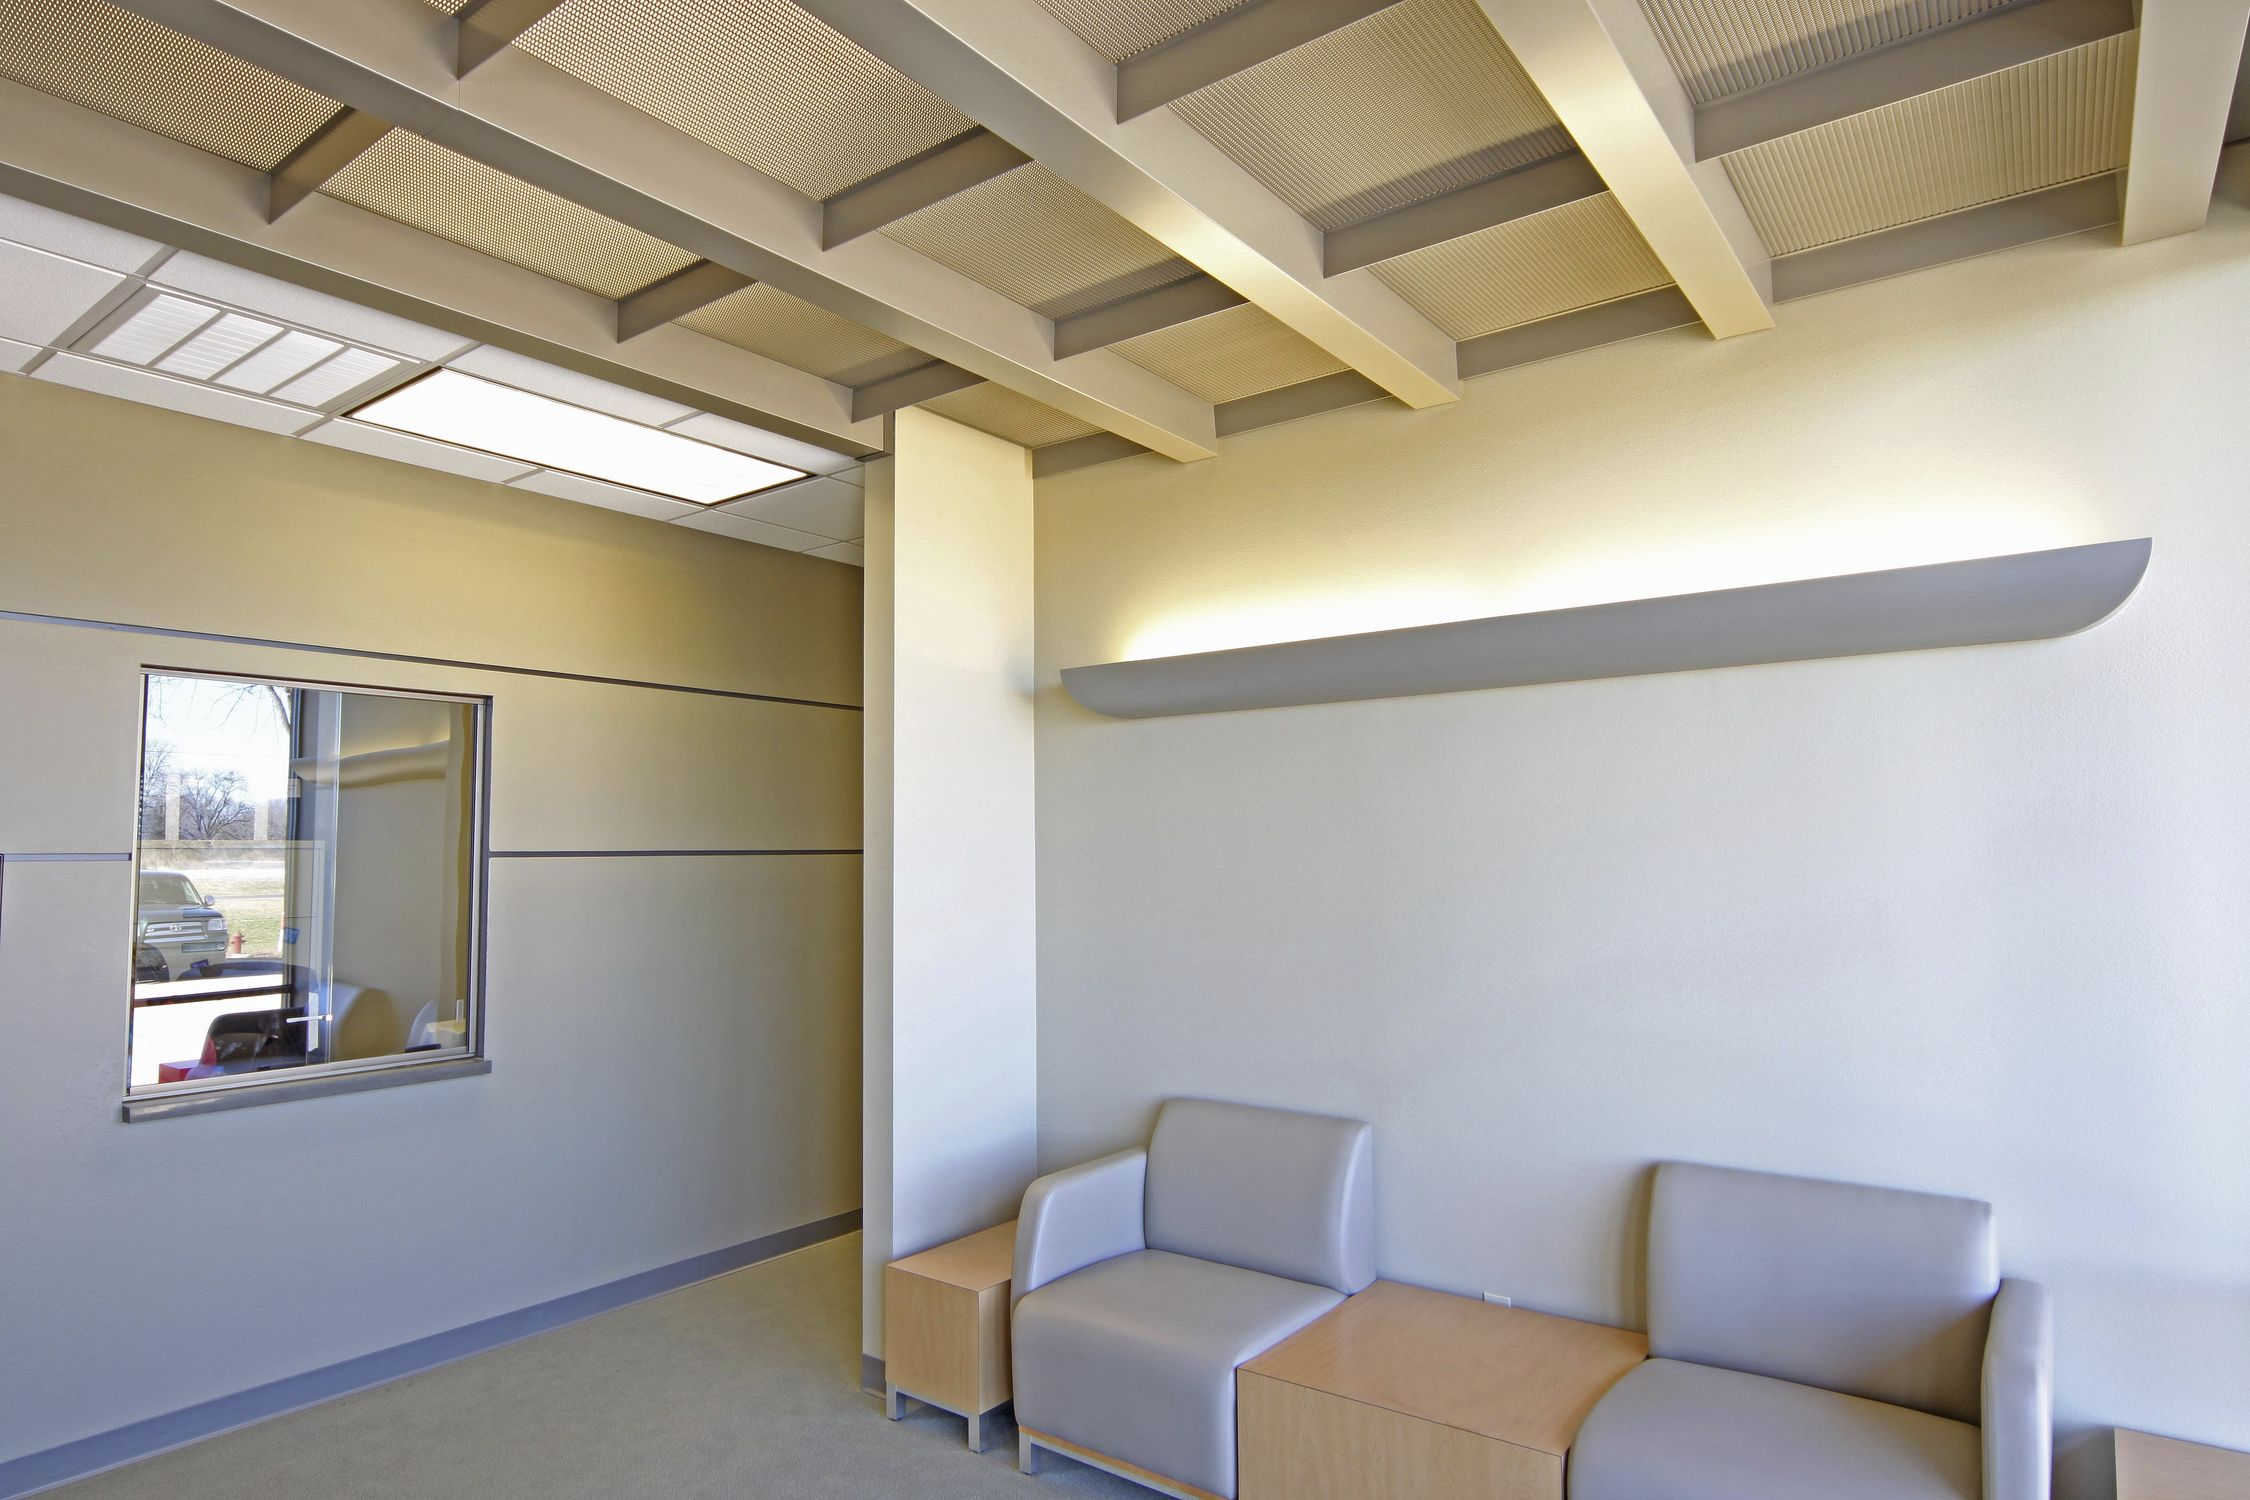 modish tiles grids types of for drop ideas basement ceiling ceilings panels different image